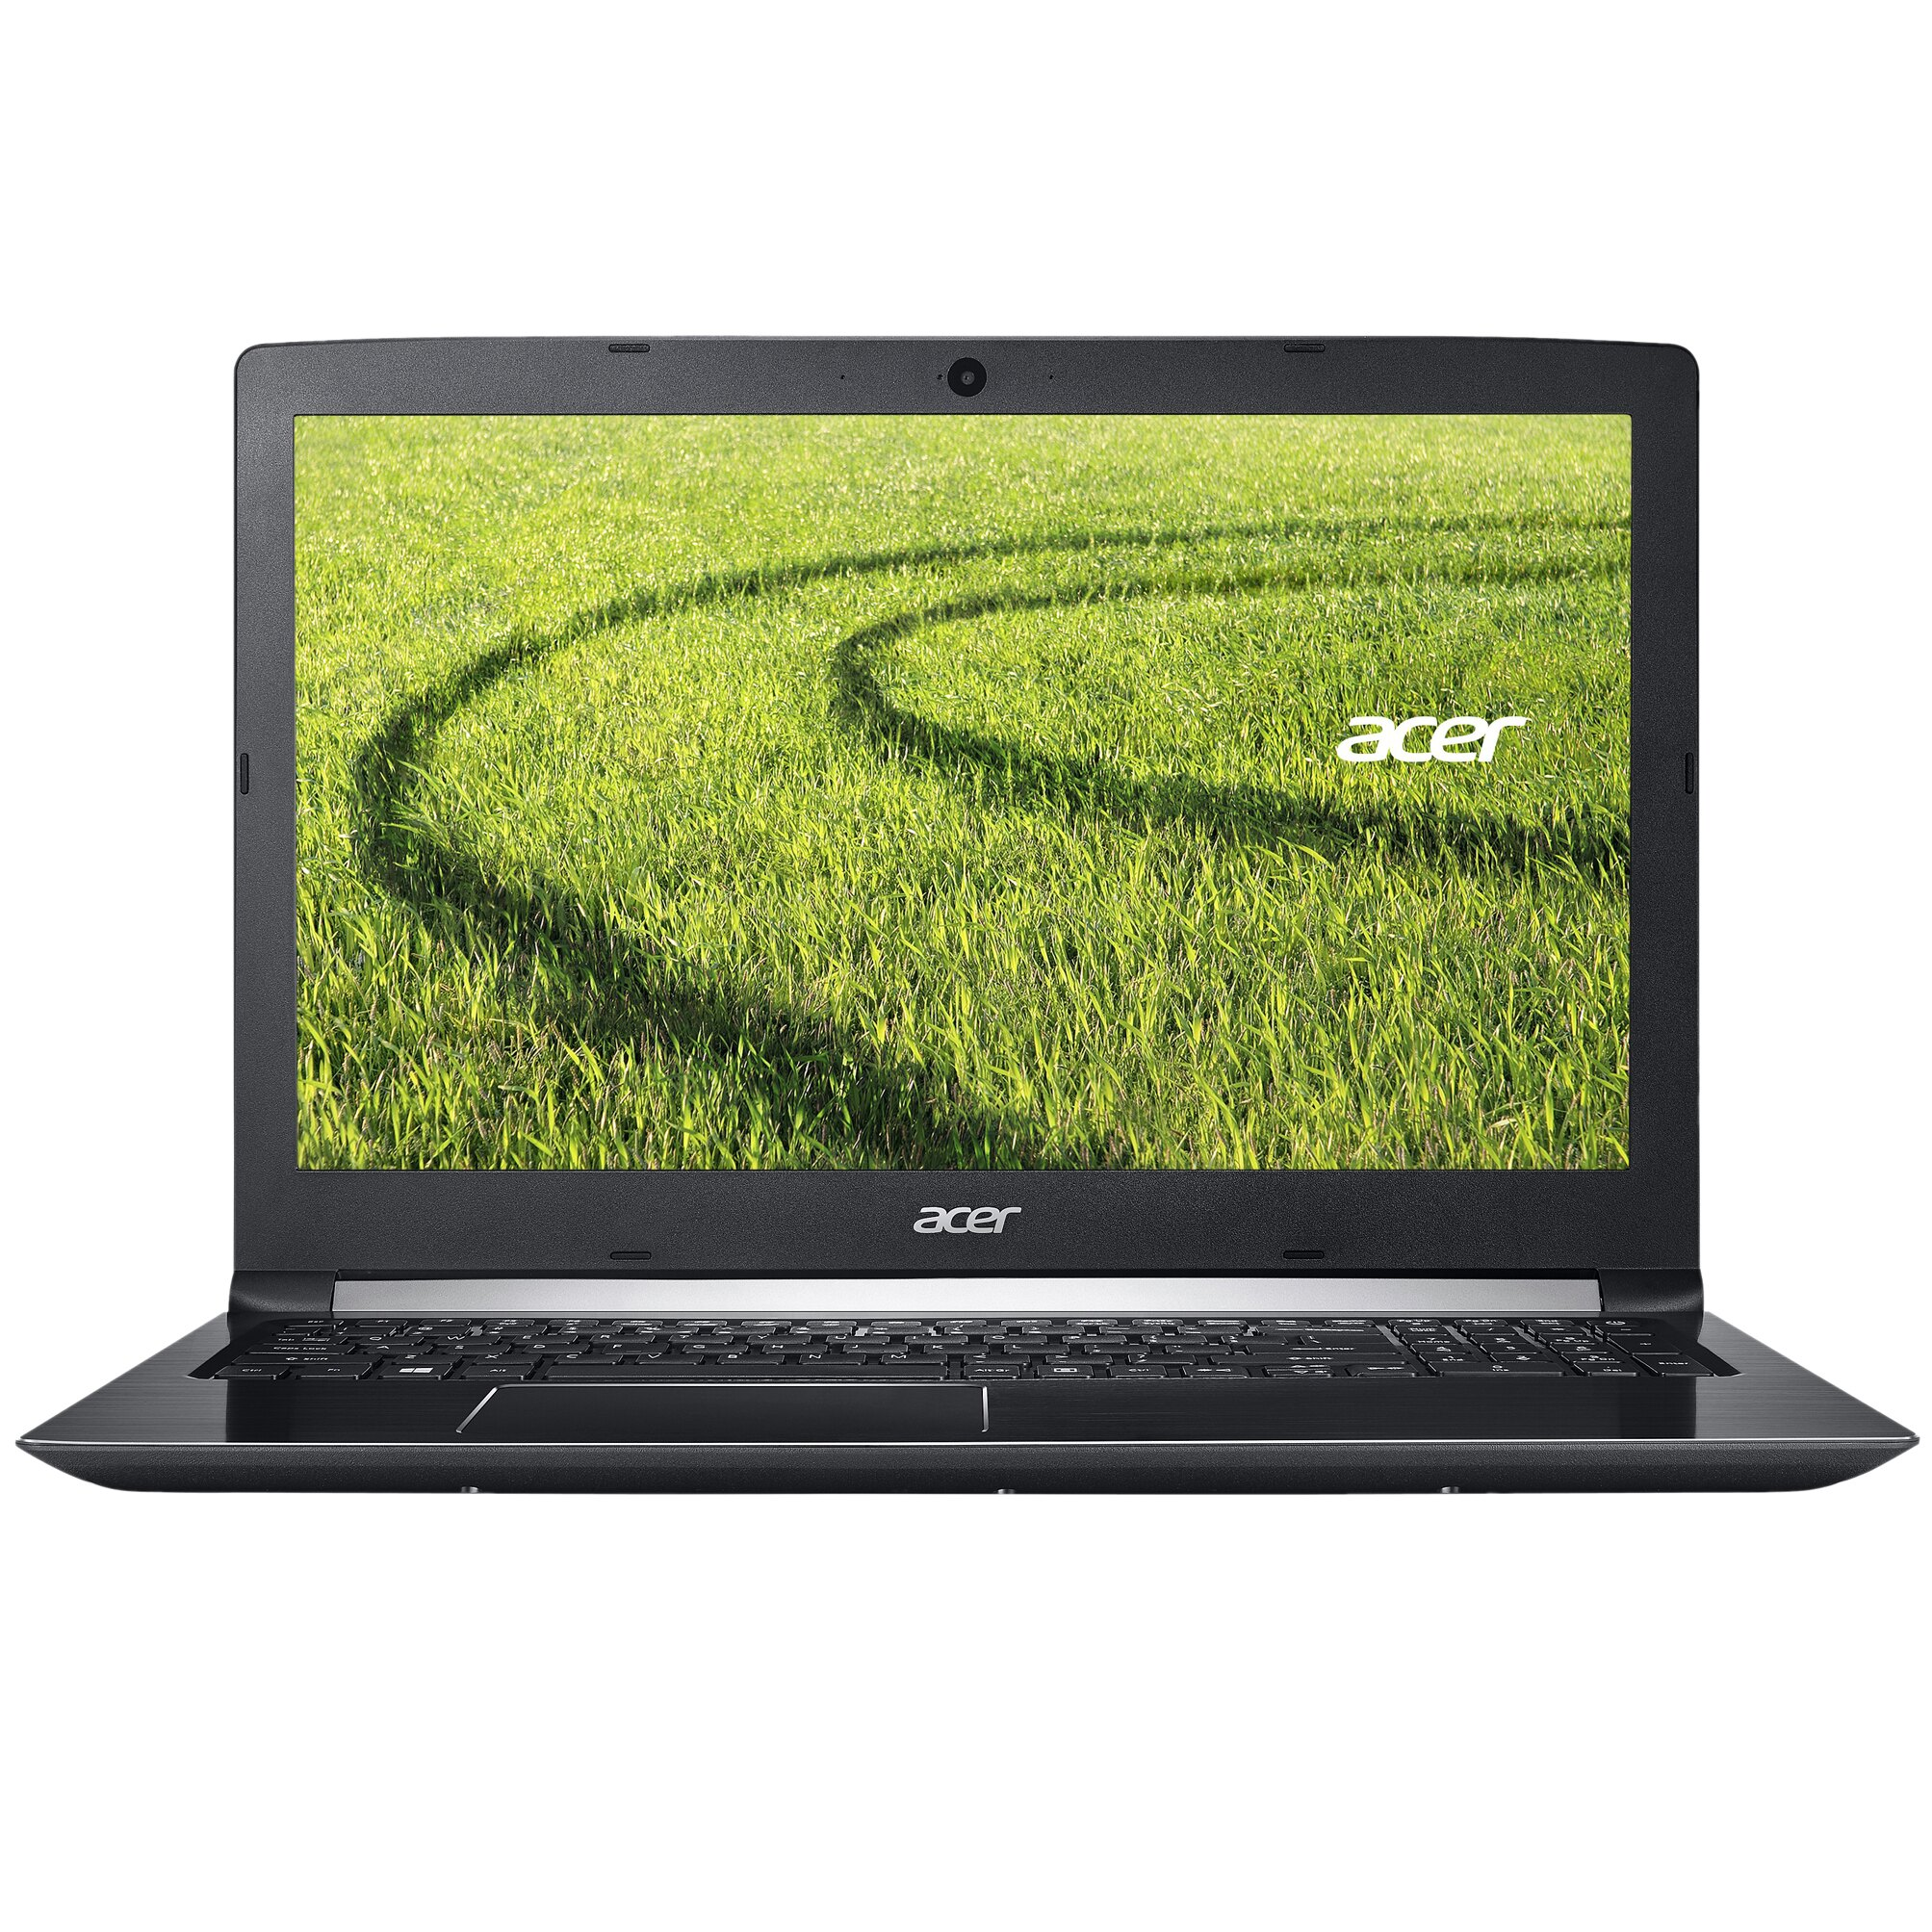 "Acer Notebook 15.6"" Intel Core i7 2.80GHz 8GB Ram 1TB HDD Windows 10 Home 0"